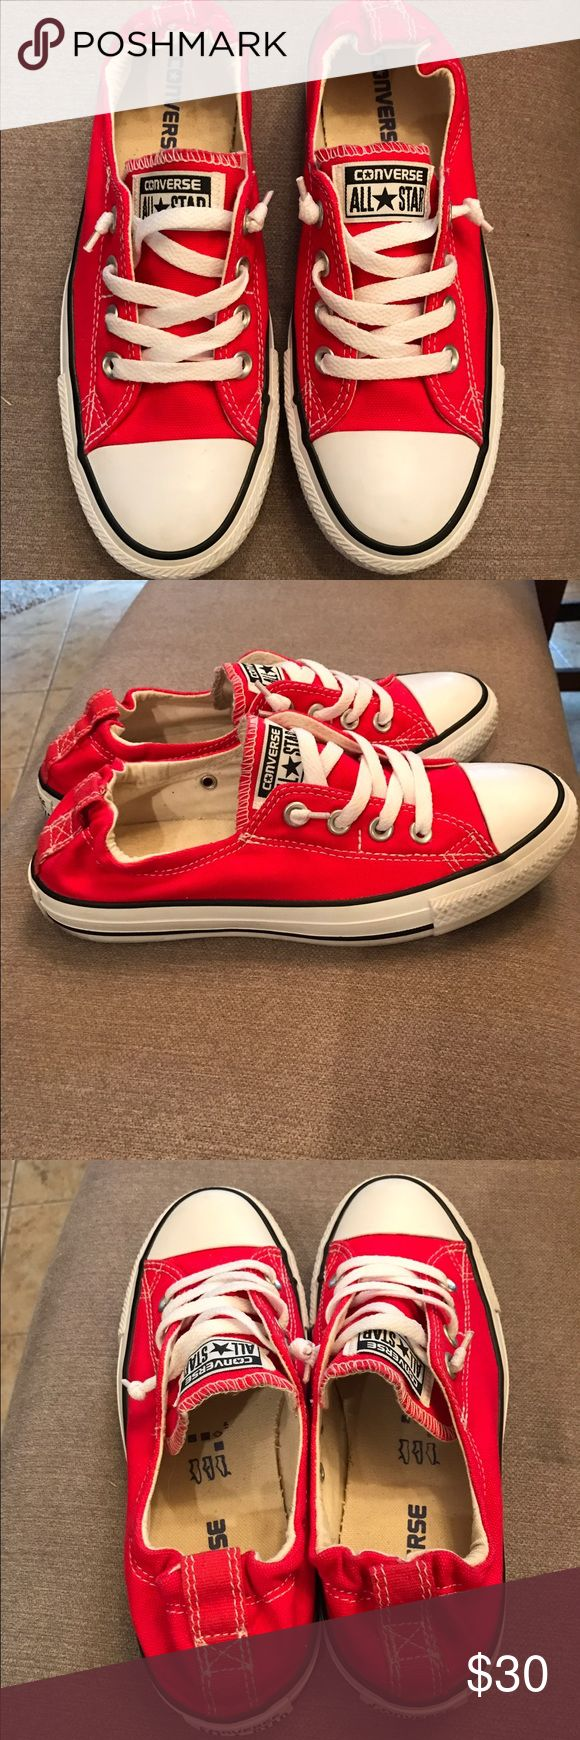 Converse Chuck Taylor All Star shoreline sneakers Red converse sneakers in great condition. Converse Shoes Sneakers